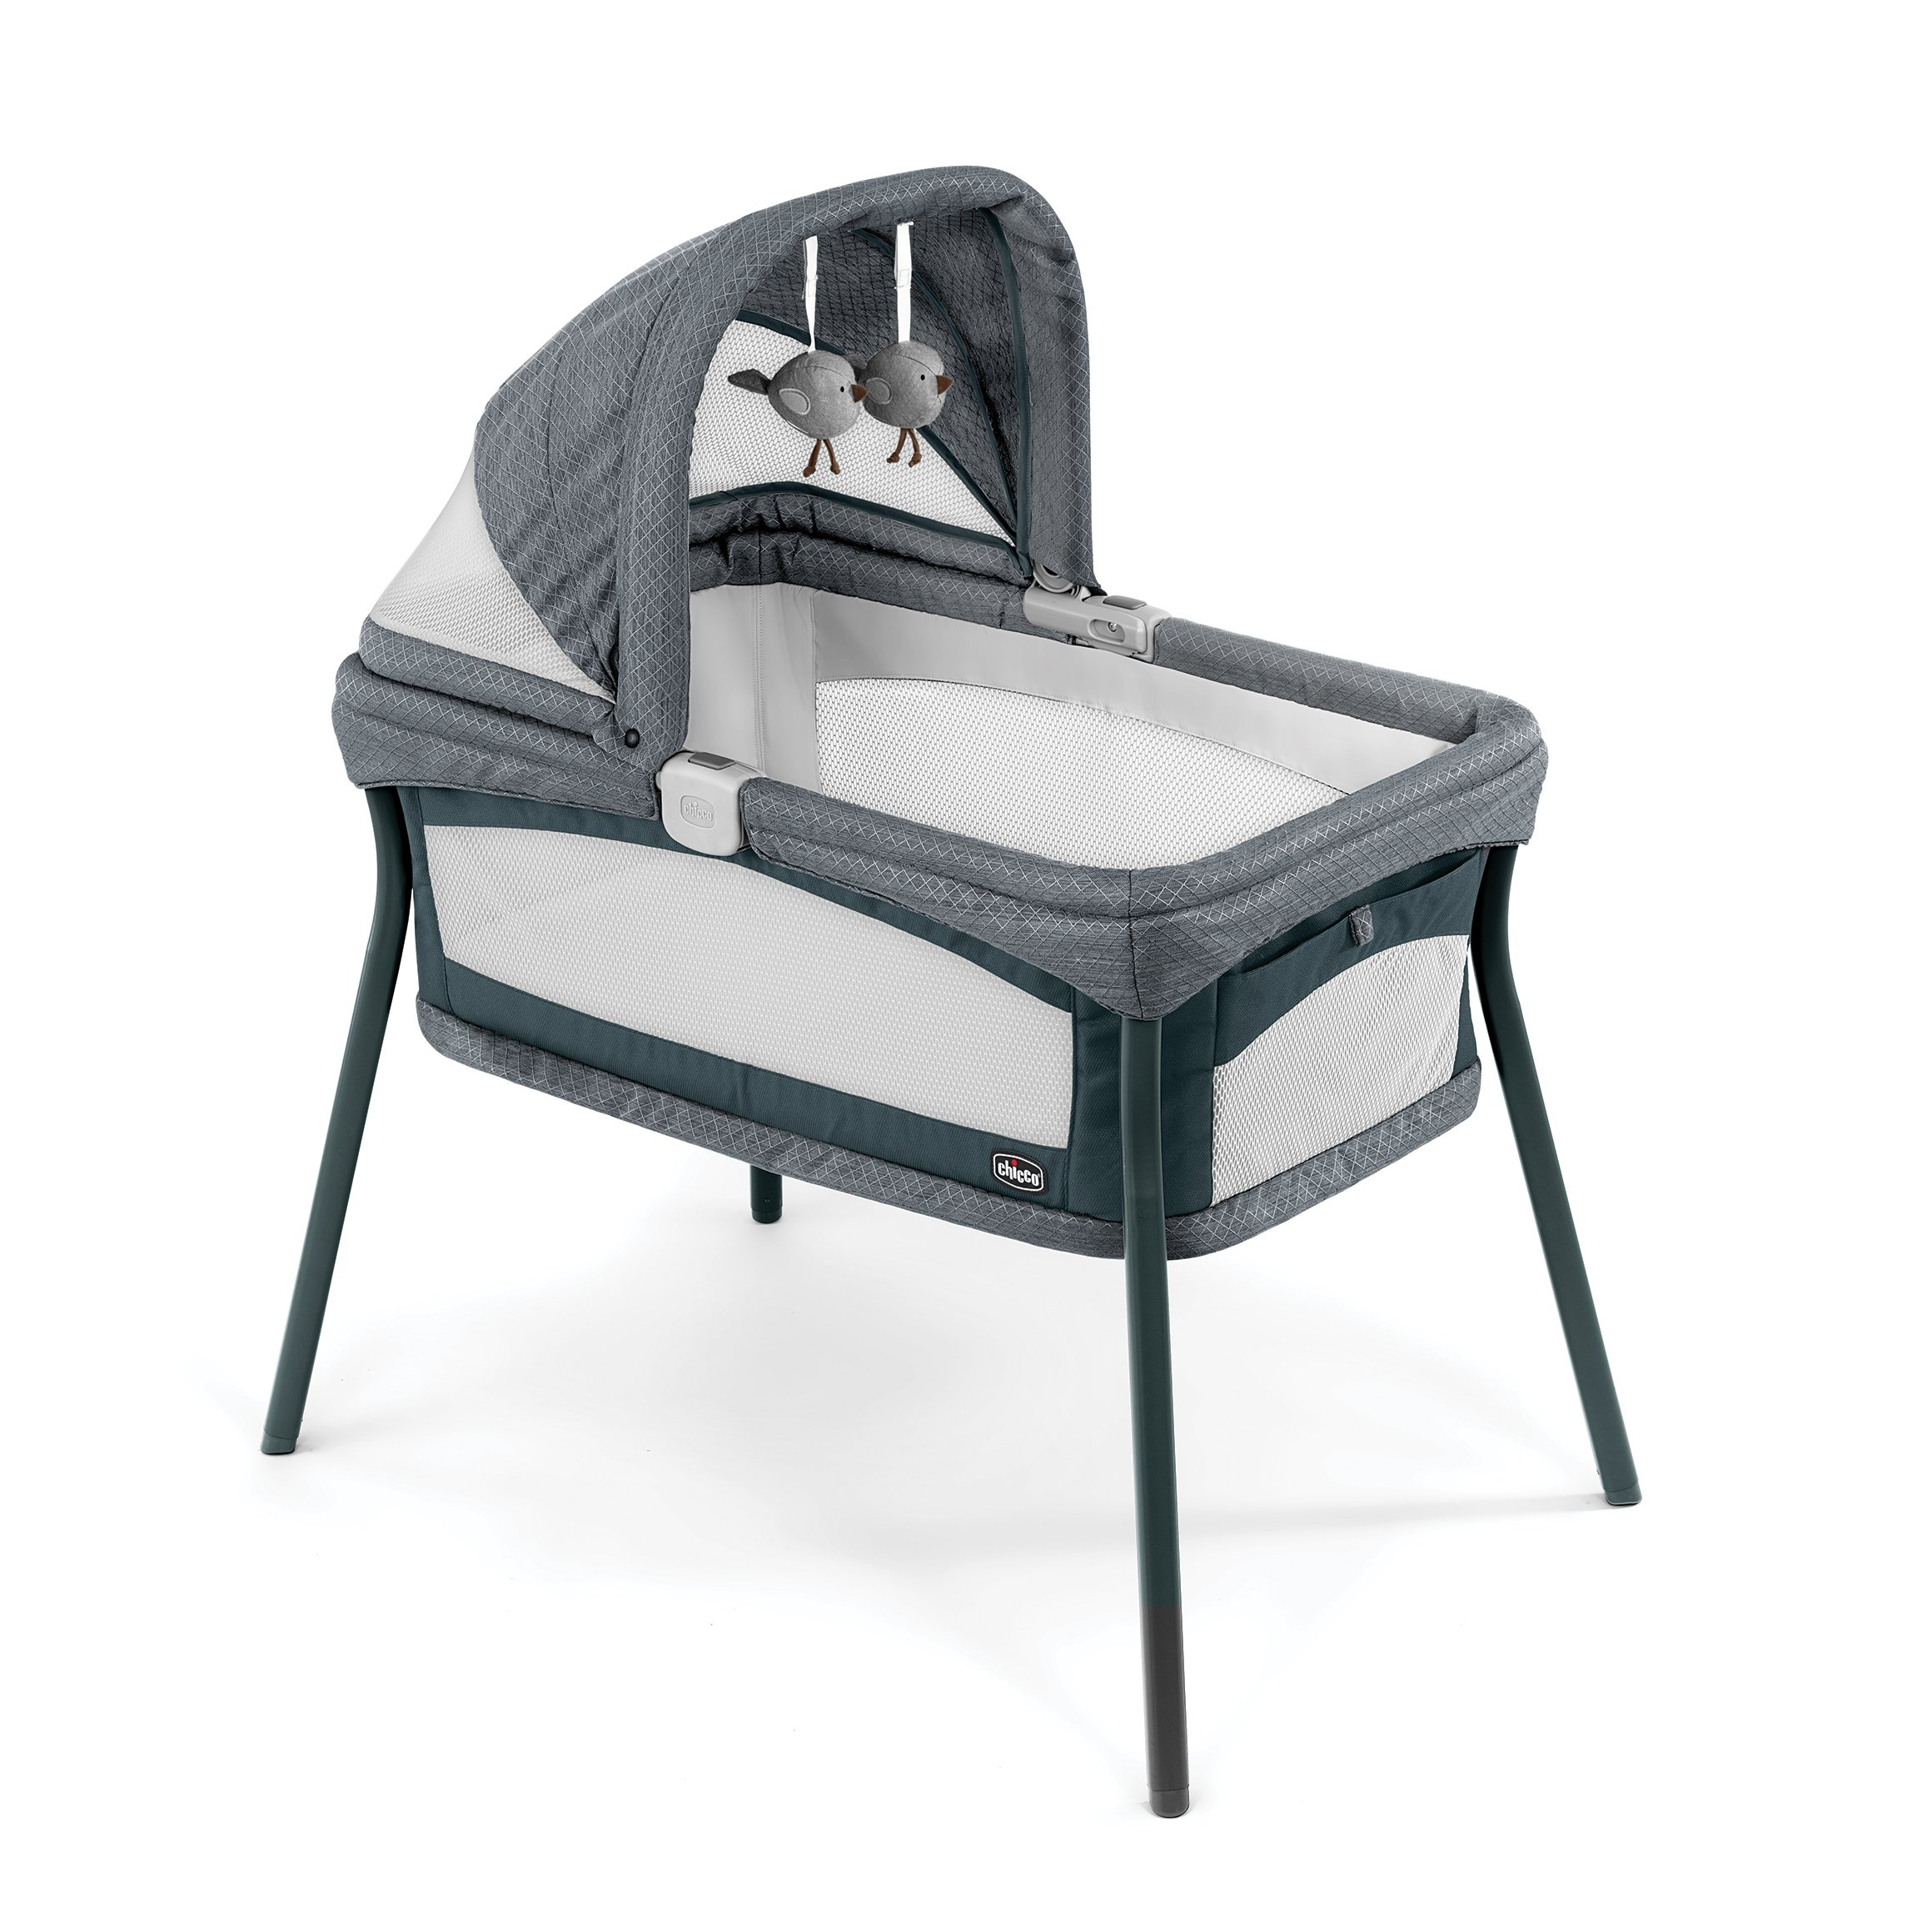 Chicco Lullago Nest Portable Bassinet, Travel Friendly Carry Bag, Removable and Machine-Washable Fabrics, Breathable Mesh Sides, Adjustable Canopy with Hanging Toys, Poetic by Chicco